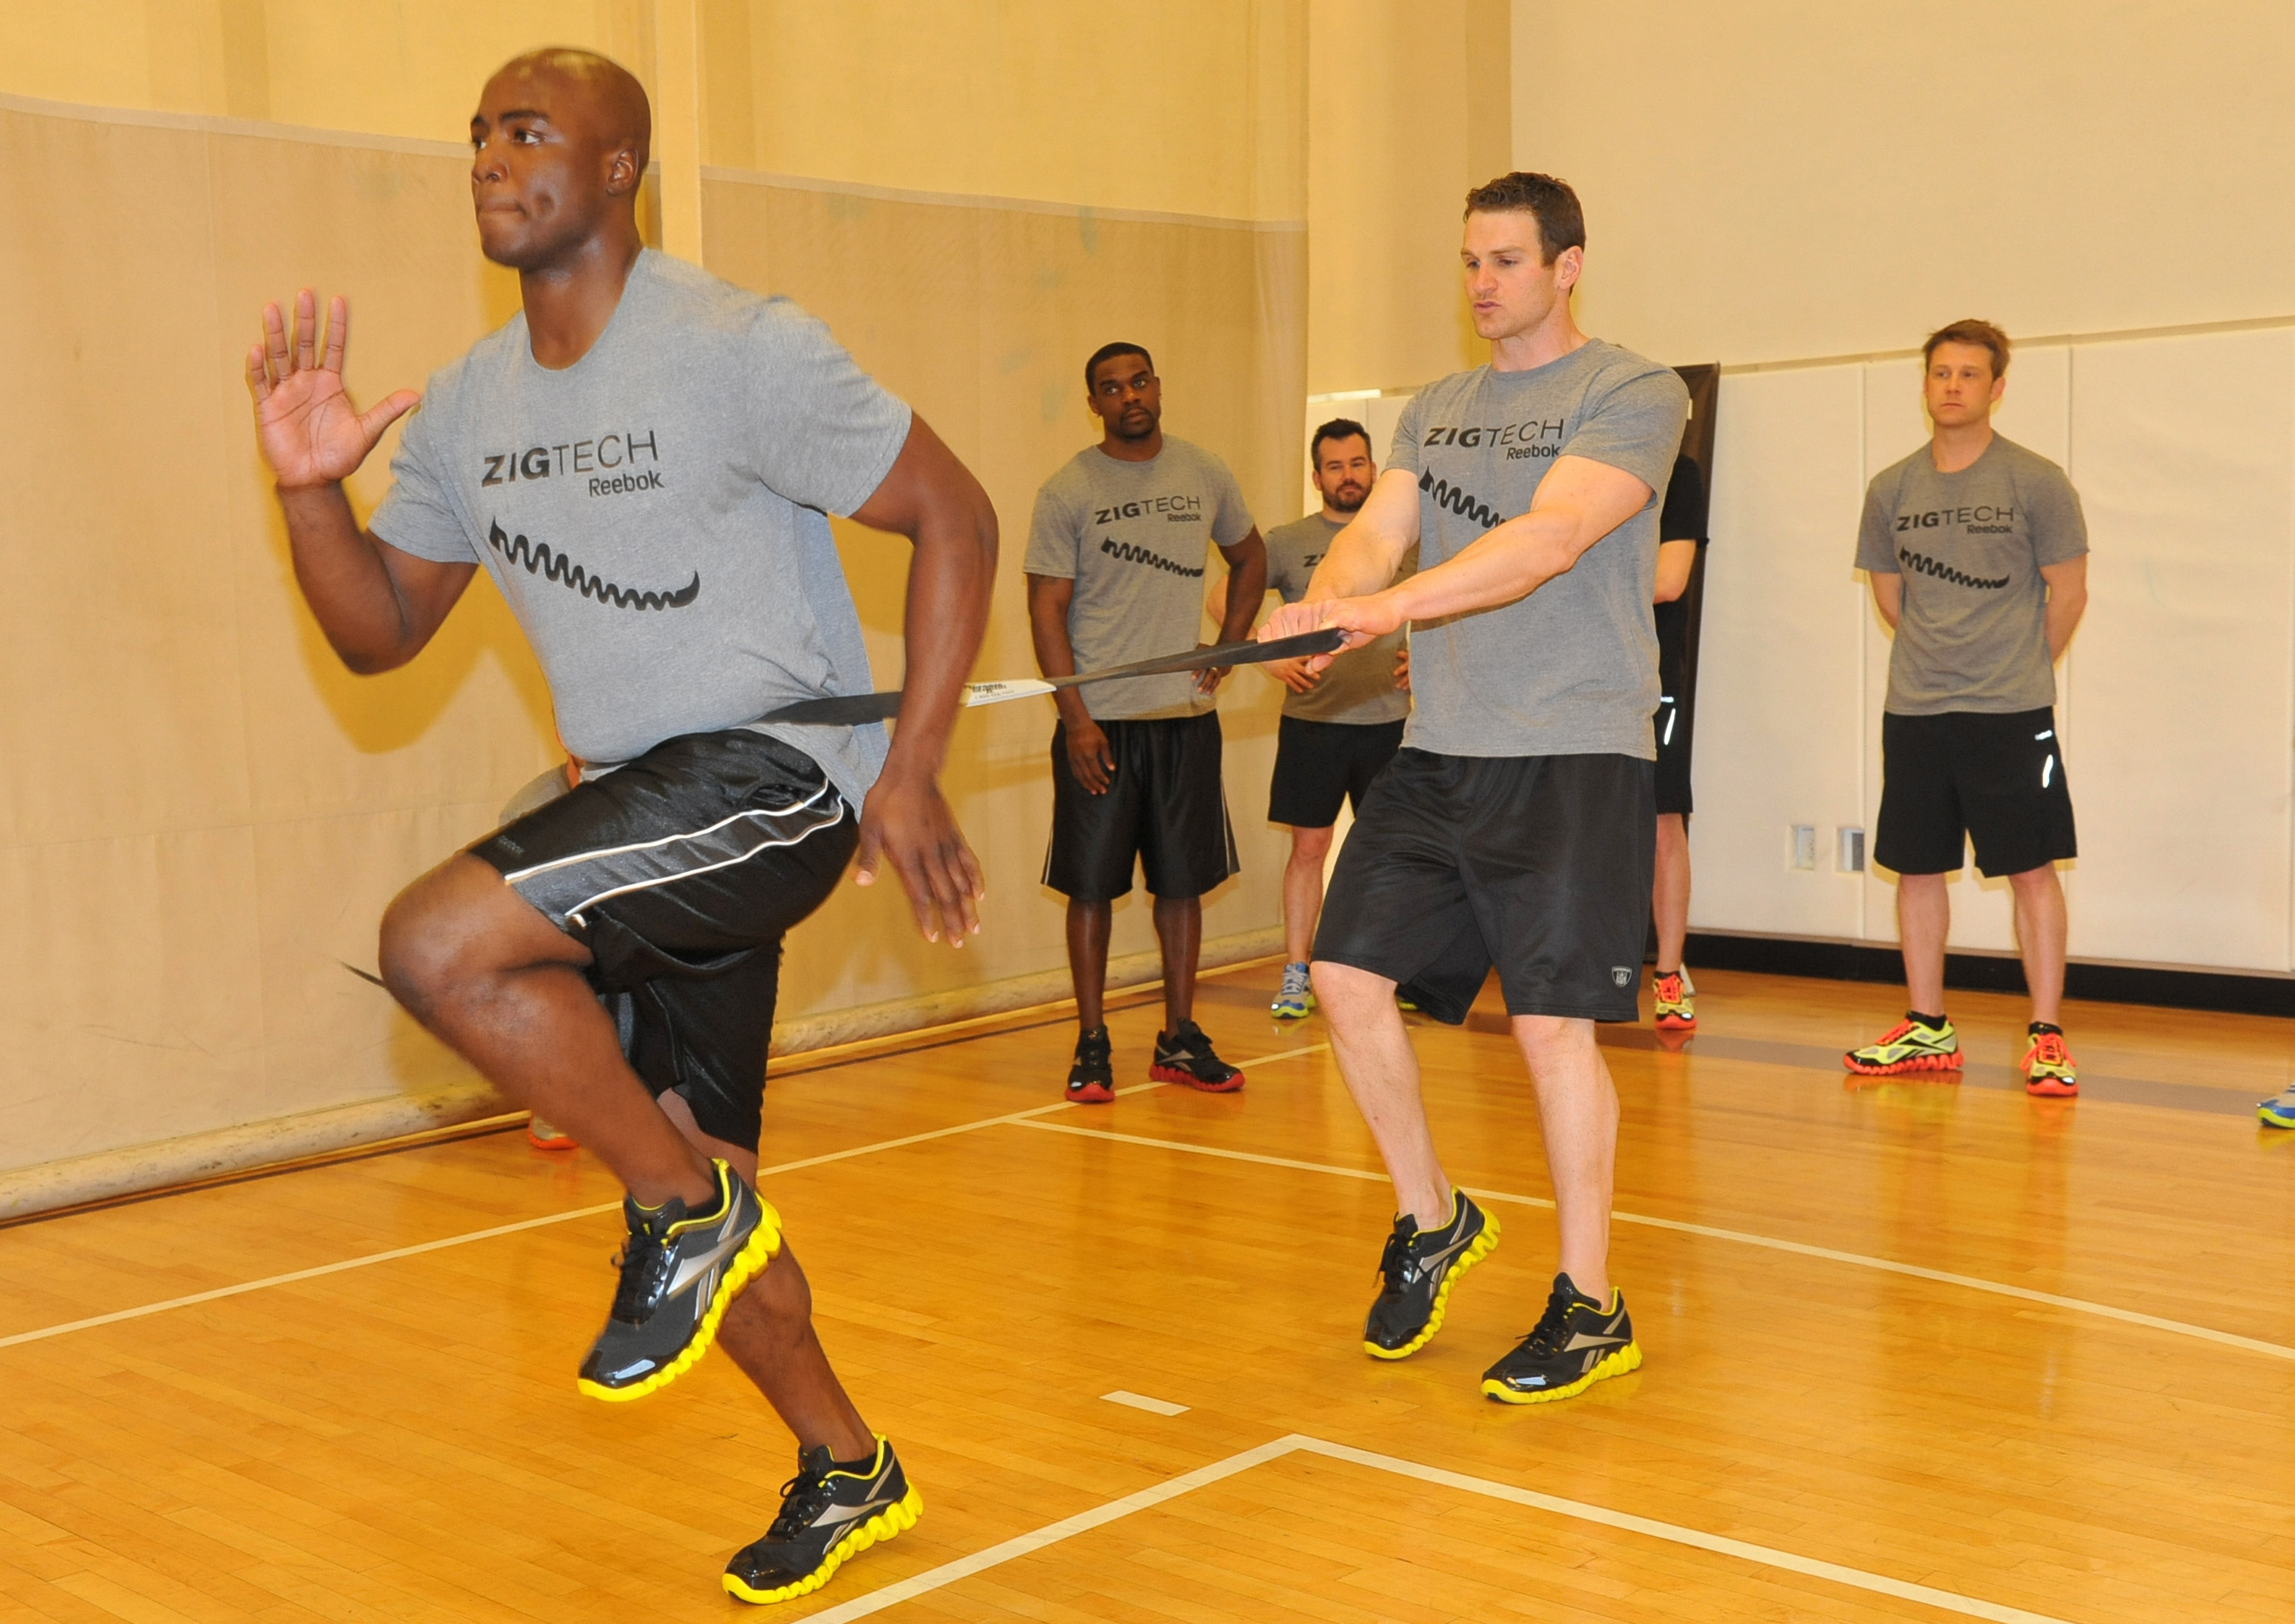 Ware does resistance band exercises like this to work on his coordination and stabilizer muscles.